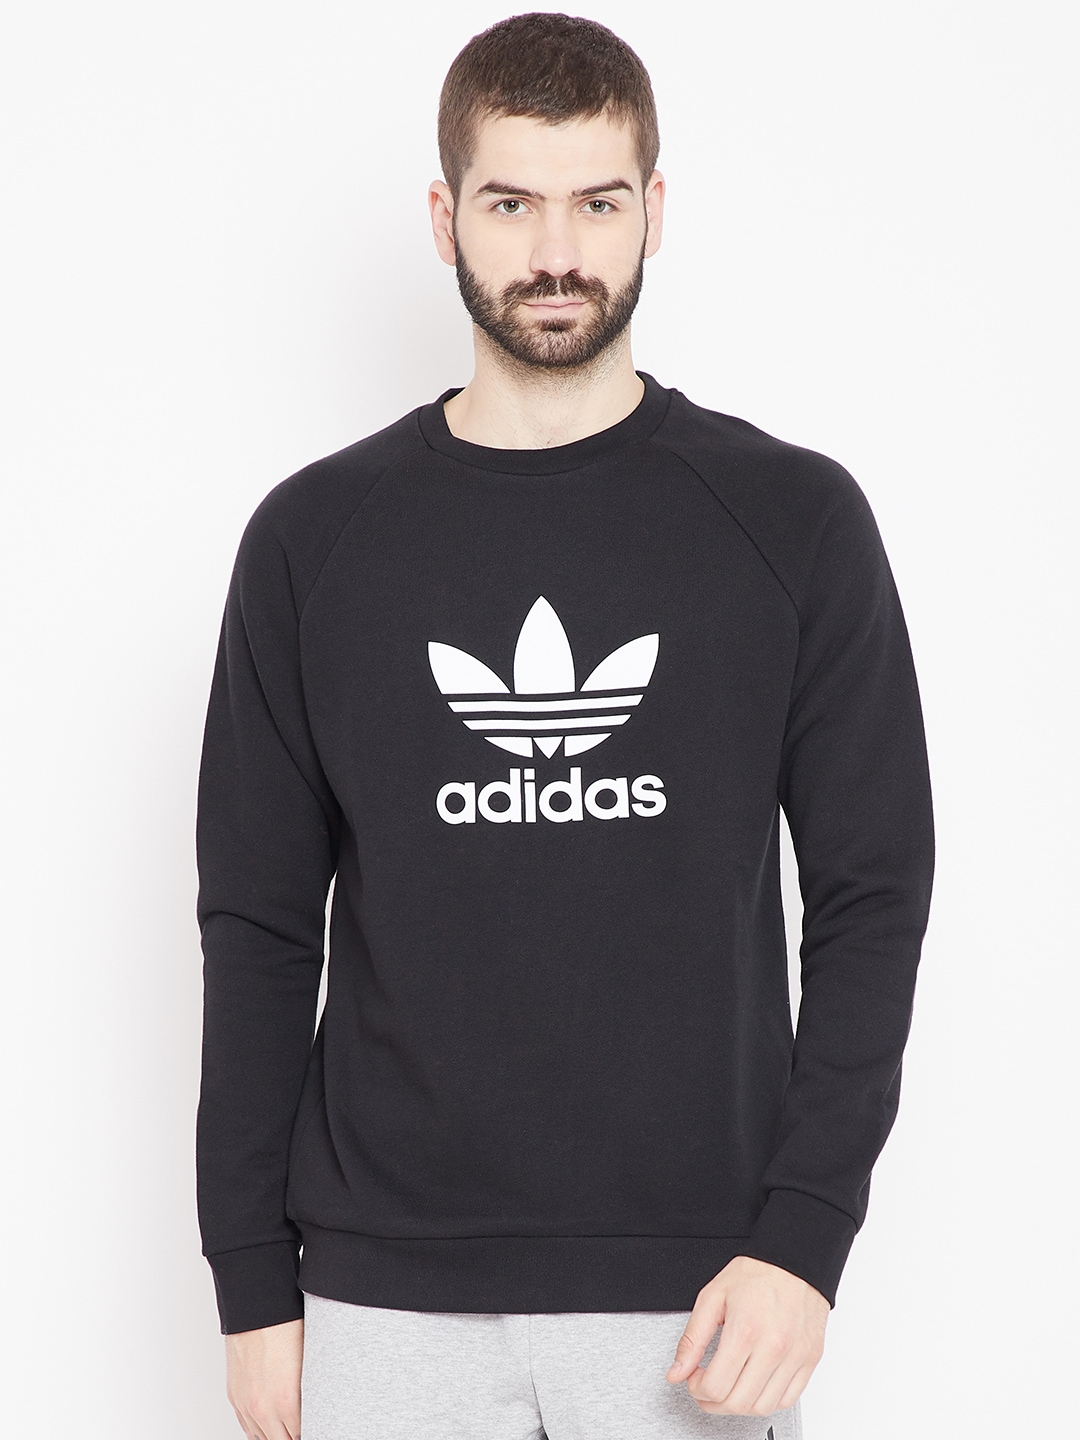 8dbc9b09f Adidas Originals Sweatshirts - Buy Adidas Originals Sweatshirts Online in  India